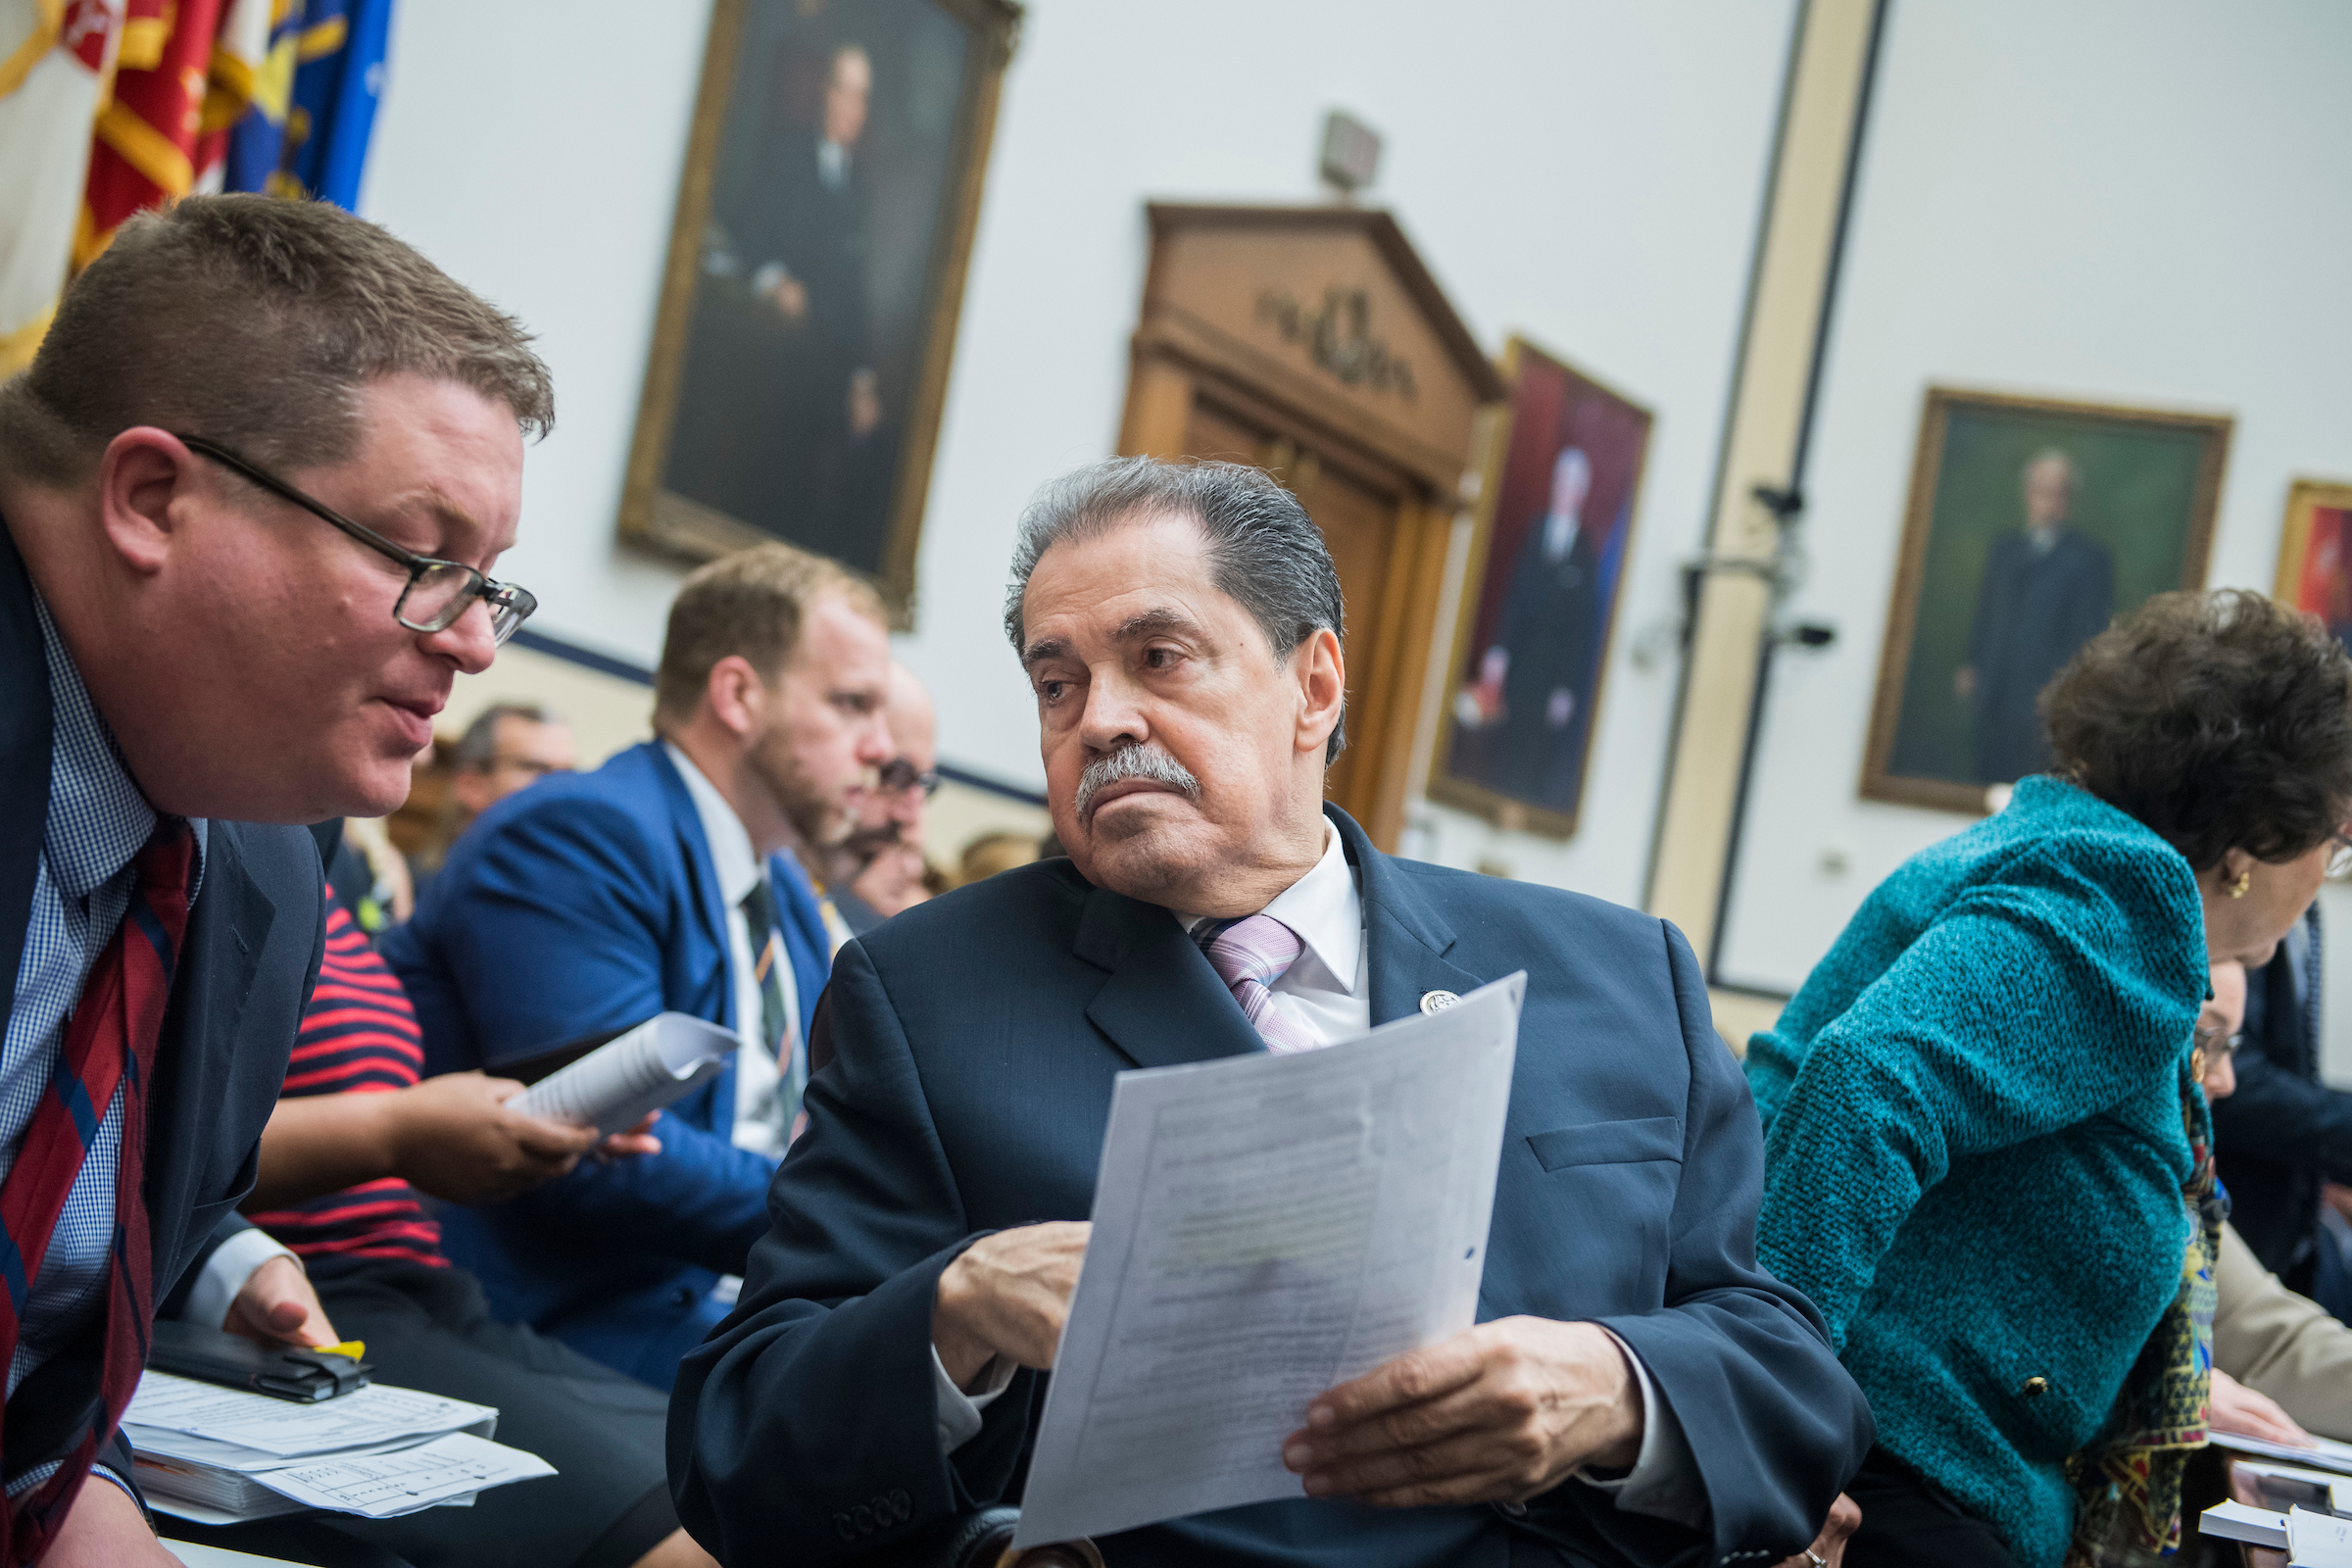 New York Rep. José Serrano has Parkinson's, won't seek re-election ...